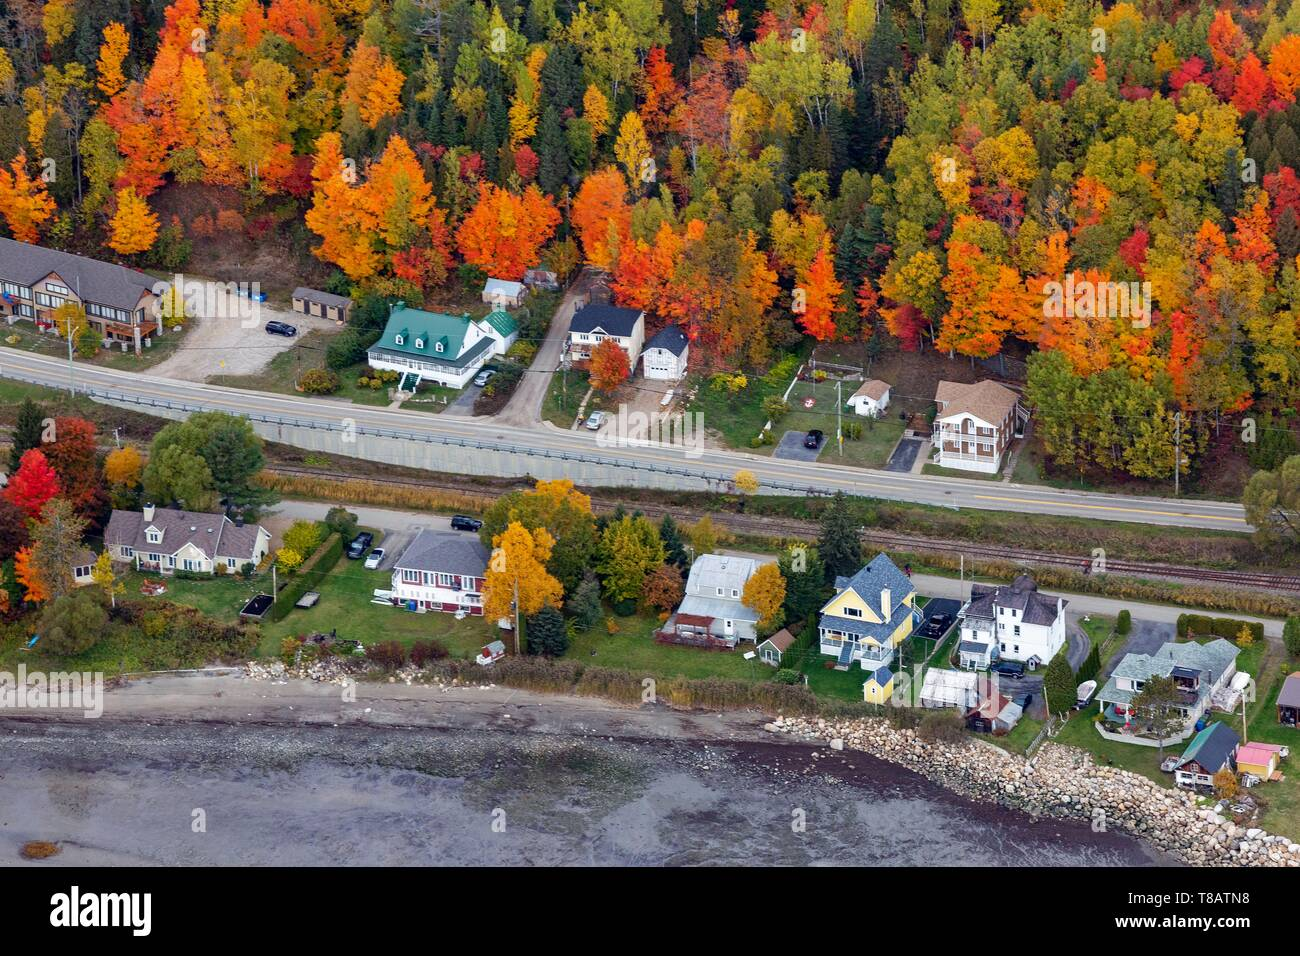 Canada, Province of Quebec, Charlevoix Region, Saint-Joseph-de-la-Rive, houses on the banks of the St. Lawrence River (aerial view) Stock Photo